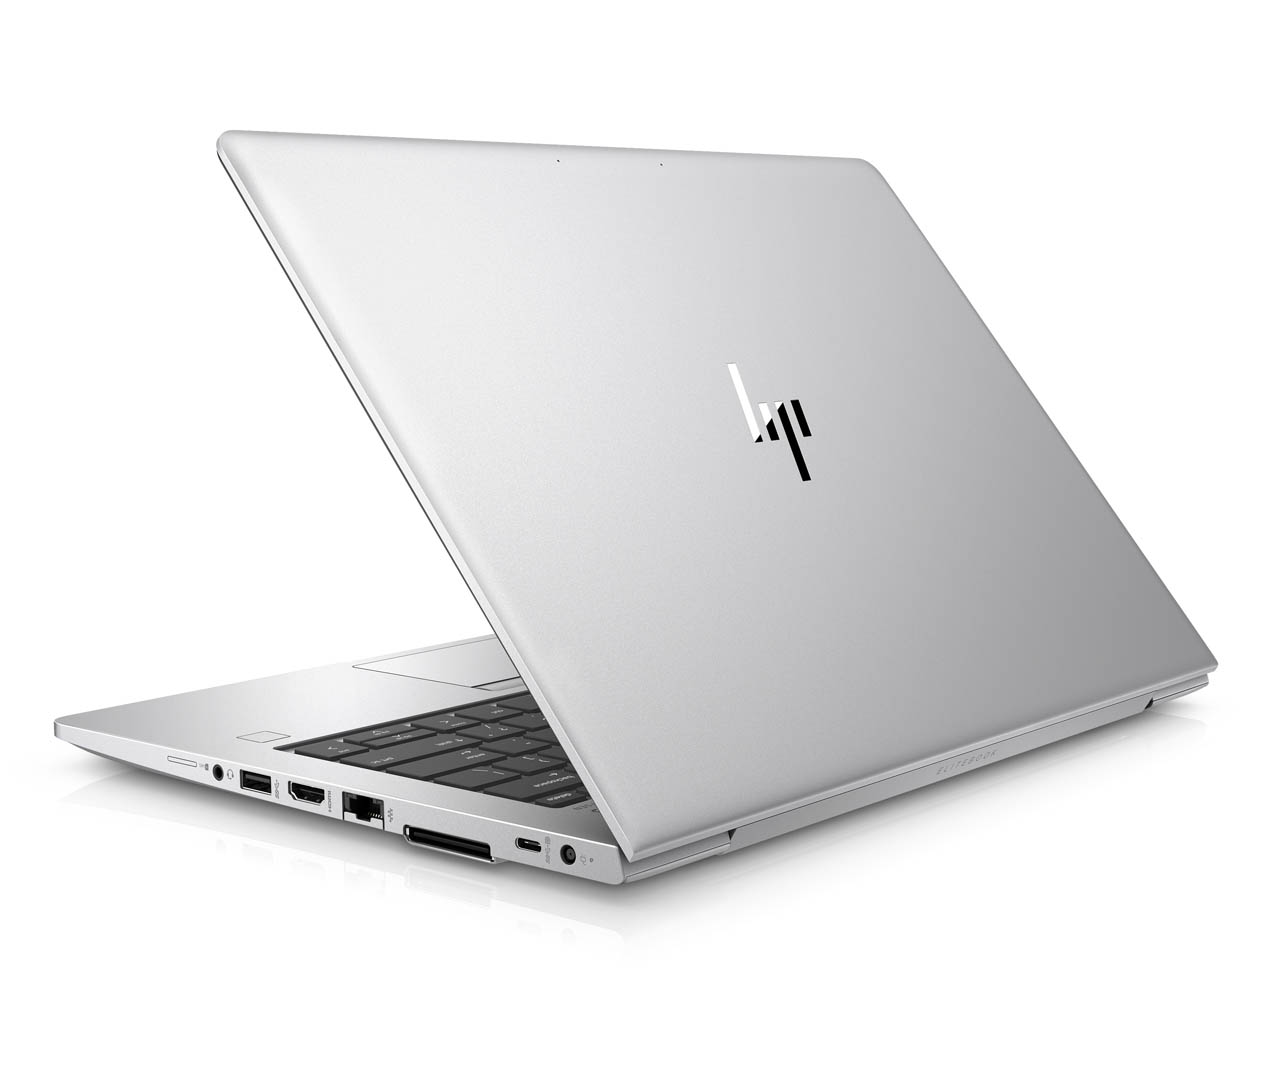 HP annuncia gli EliteBook 700 G6 e l'HP mt45 Mobile Thin Client 5